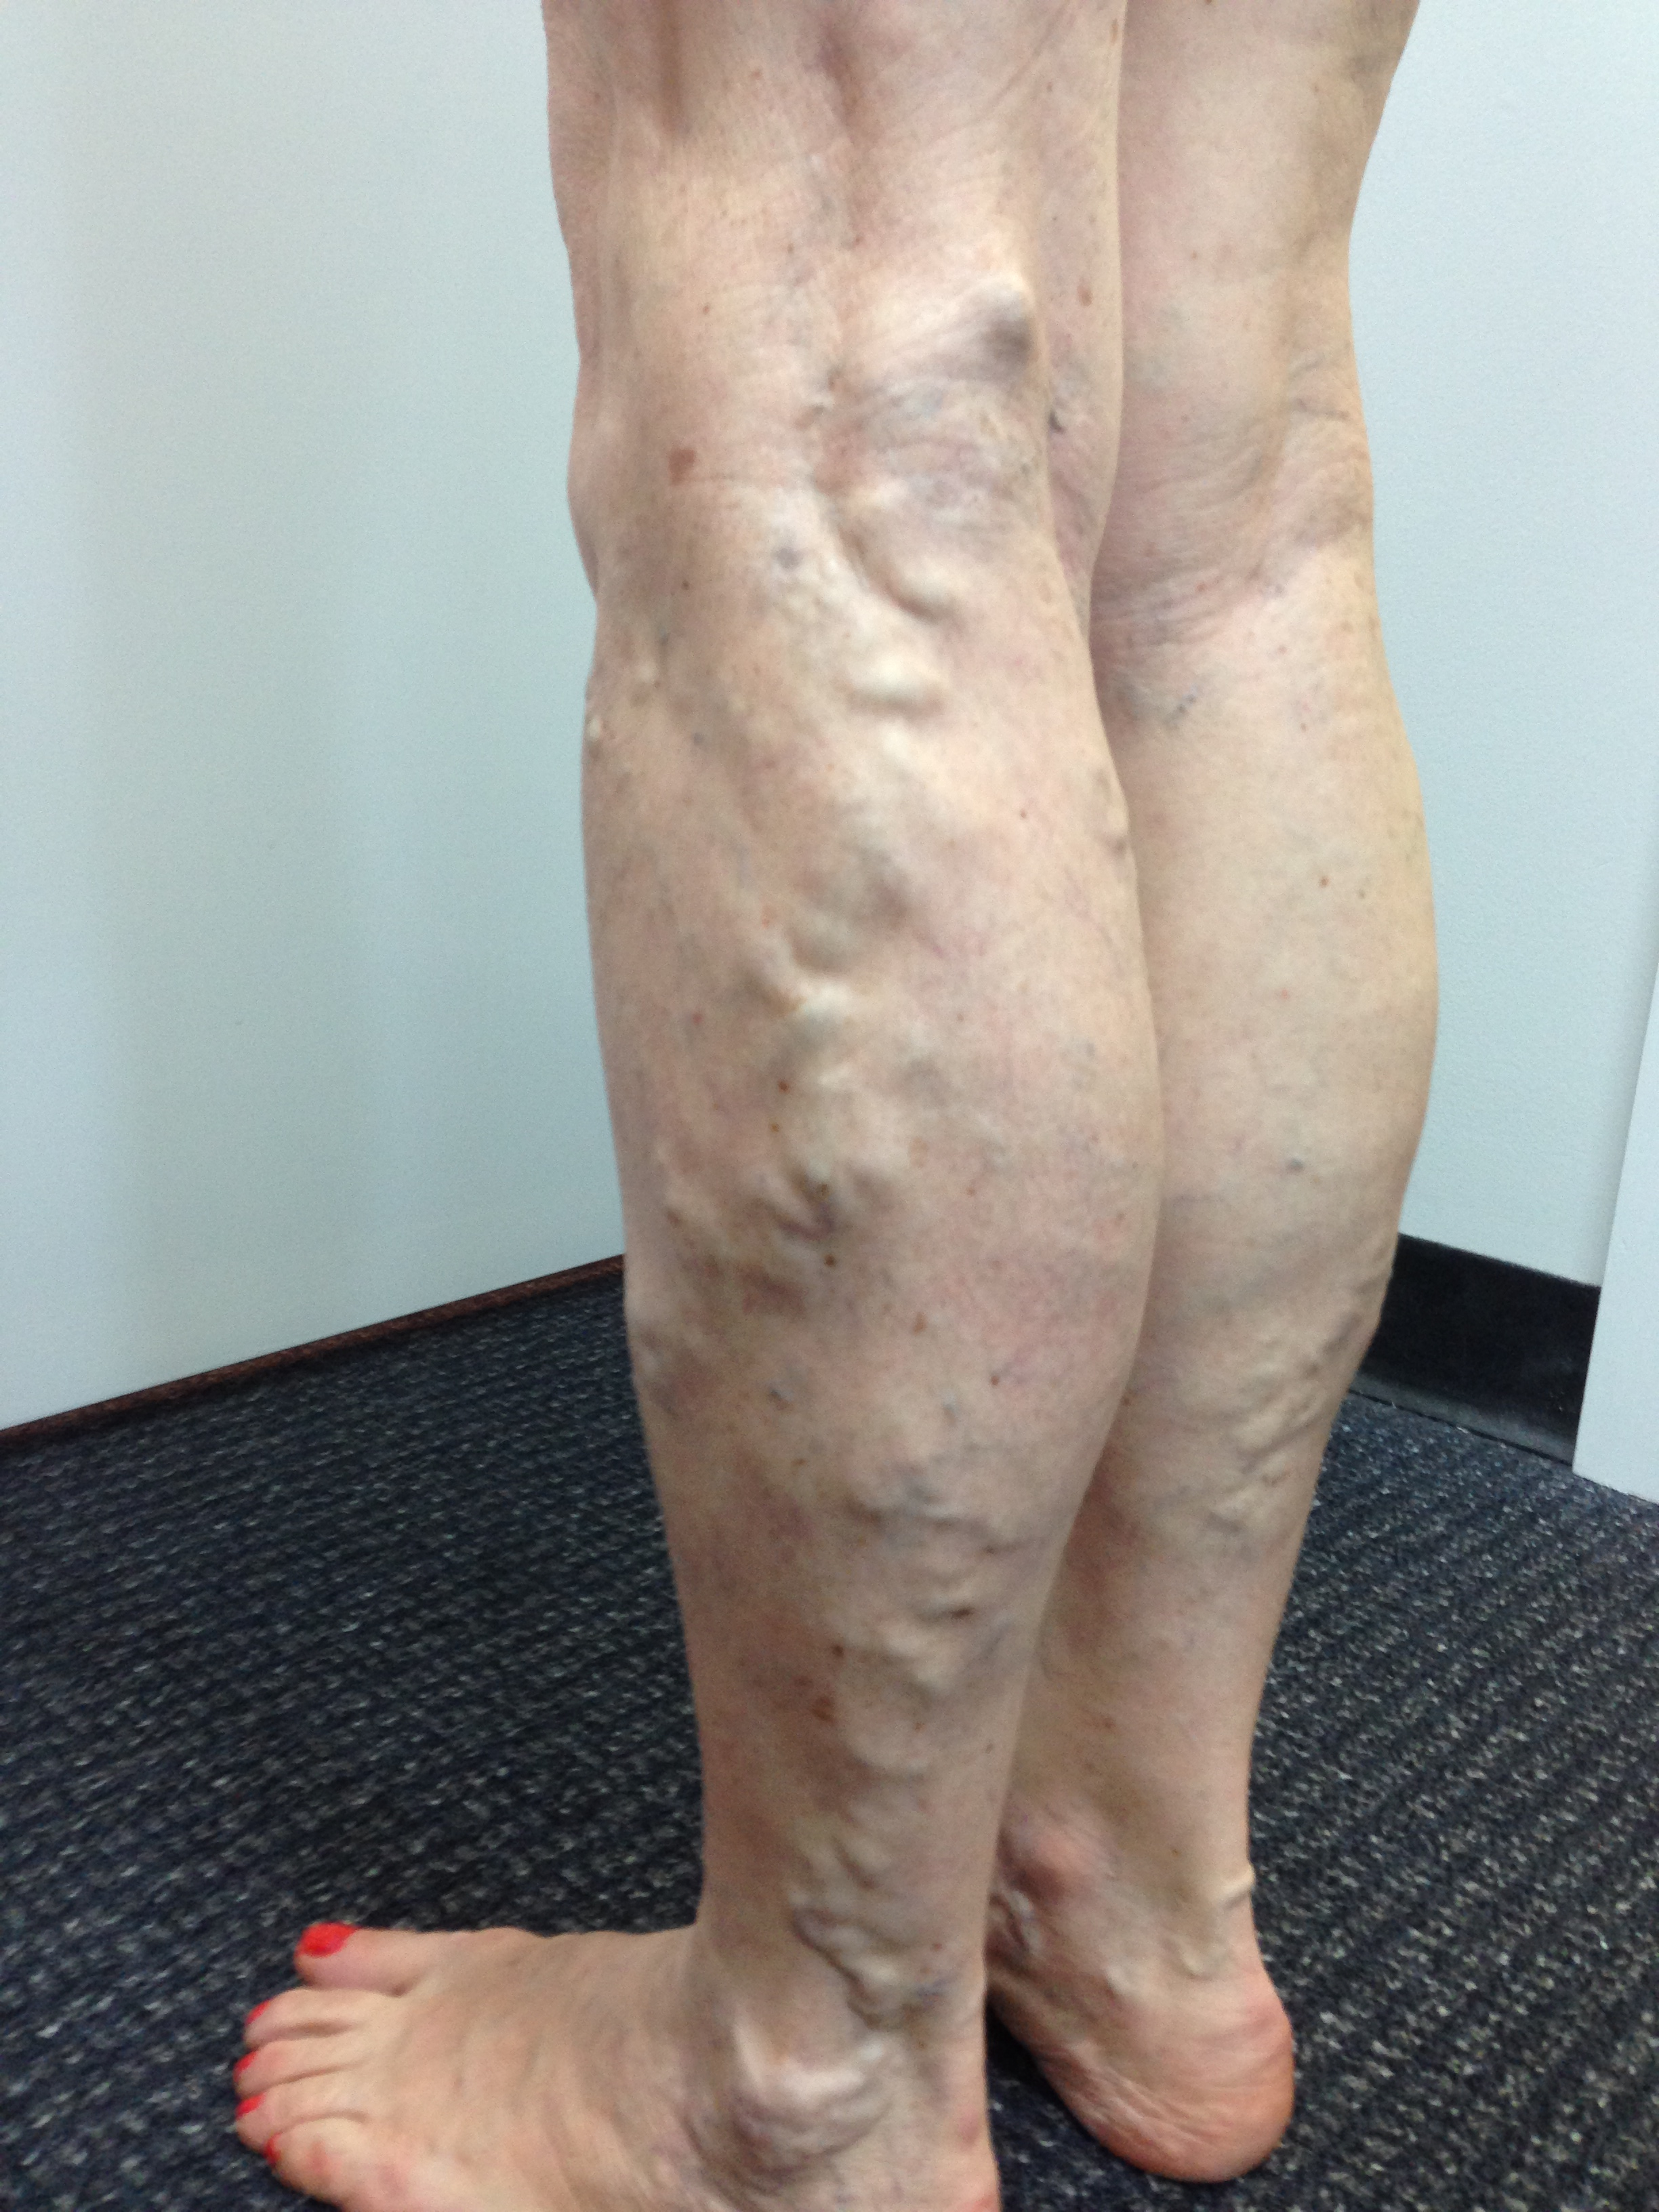 Patient presented with extensive Varicose Veins, SPJ/SSV incompetent. Female, 64 years.